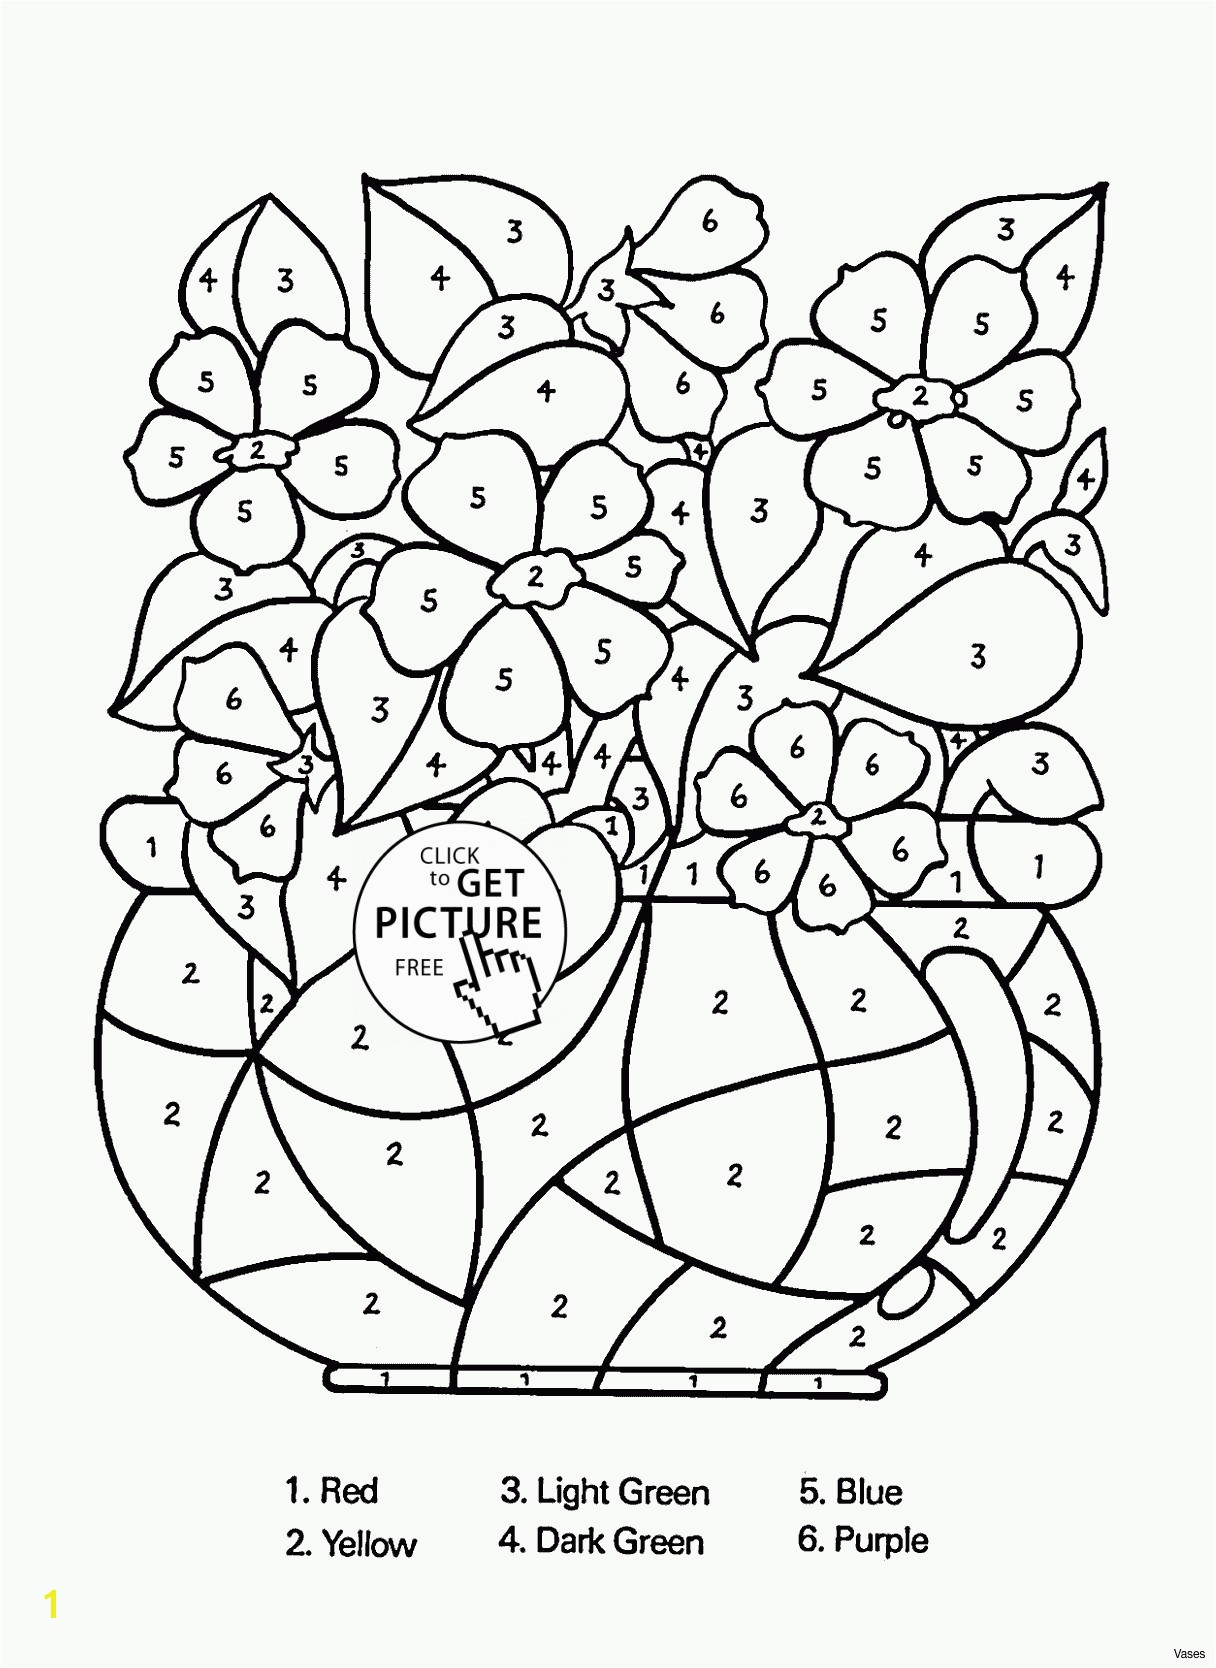 Printable plex Coloring Pages New Free Coloring Pages Printables New Cool Coloring Page for Adult Od